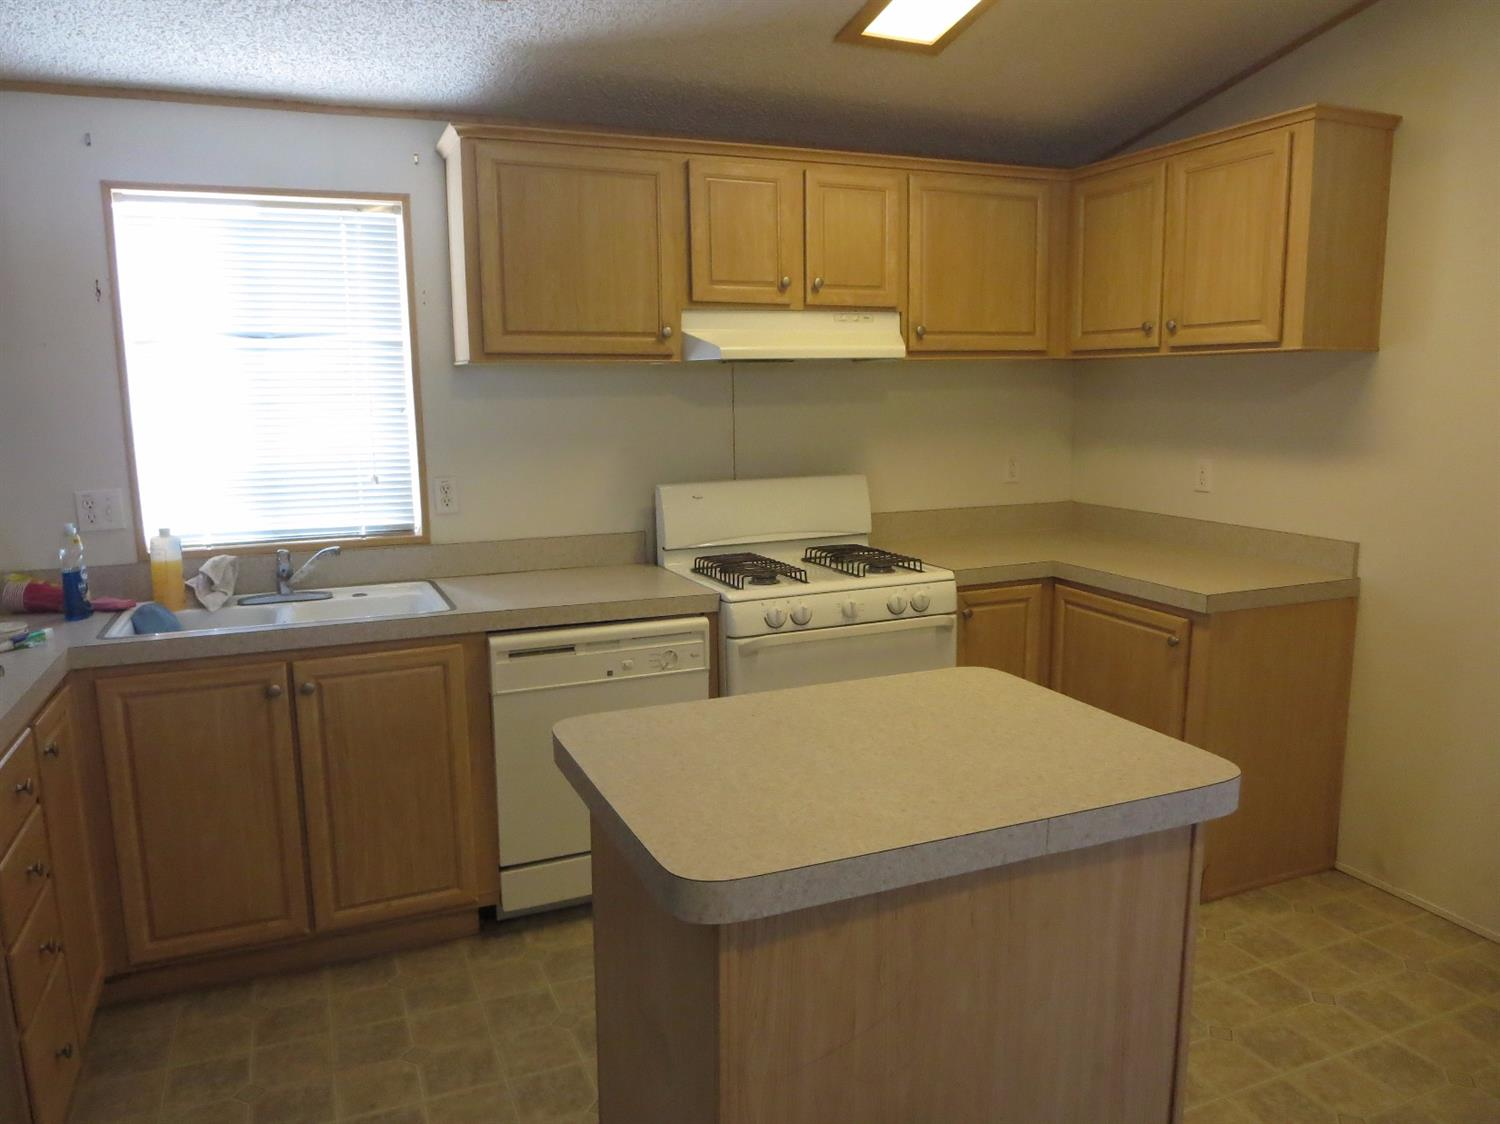 Apple Valley Kitchen Cabinets 22020 Nisqually Rd 12 Apple Valley Ca 92308 Mls 481686